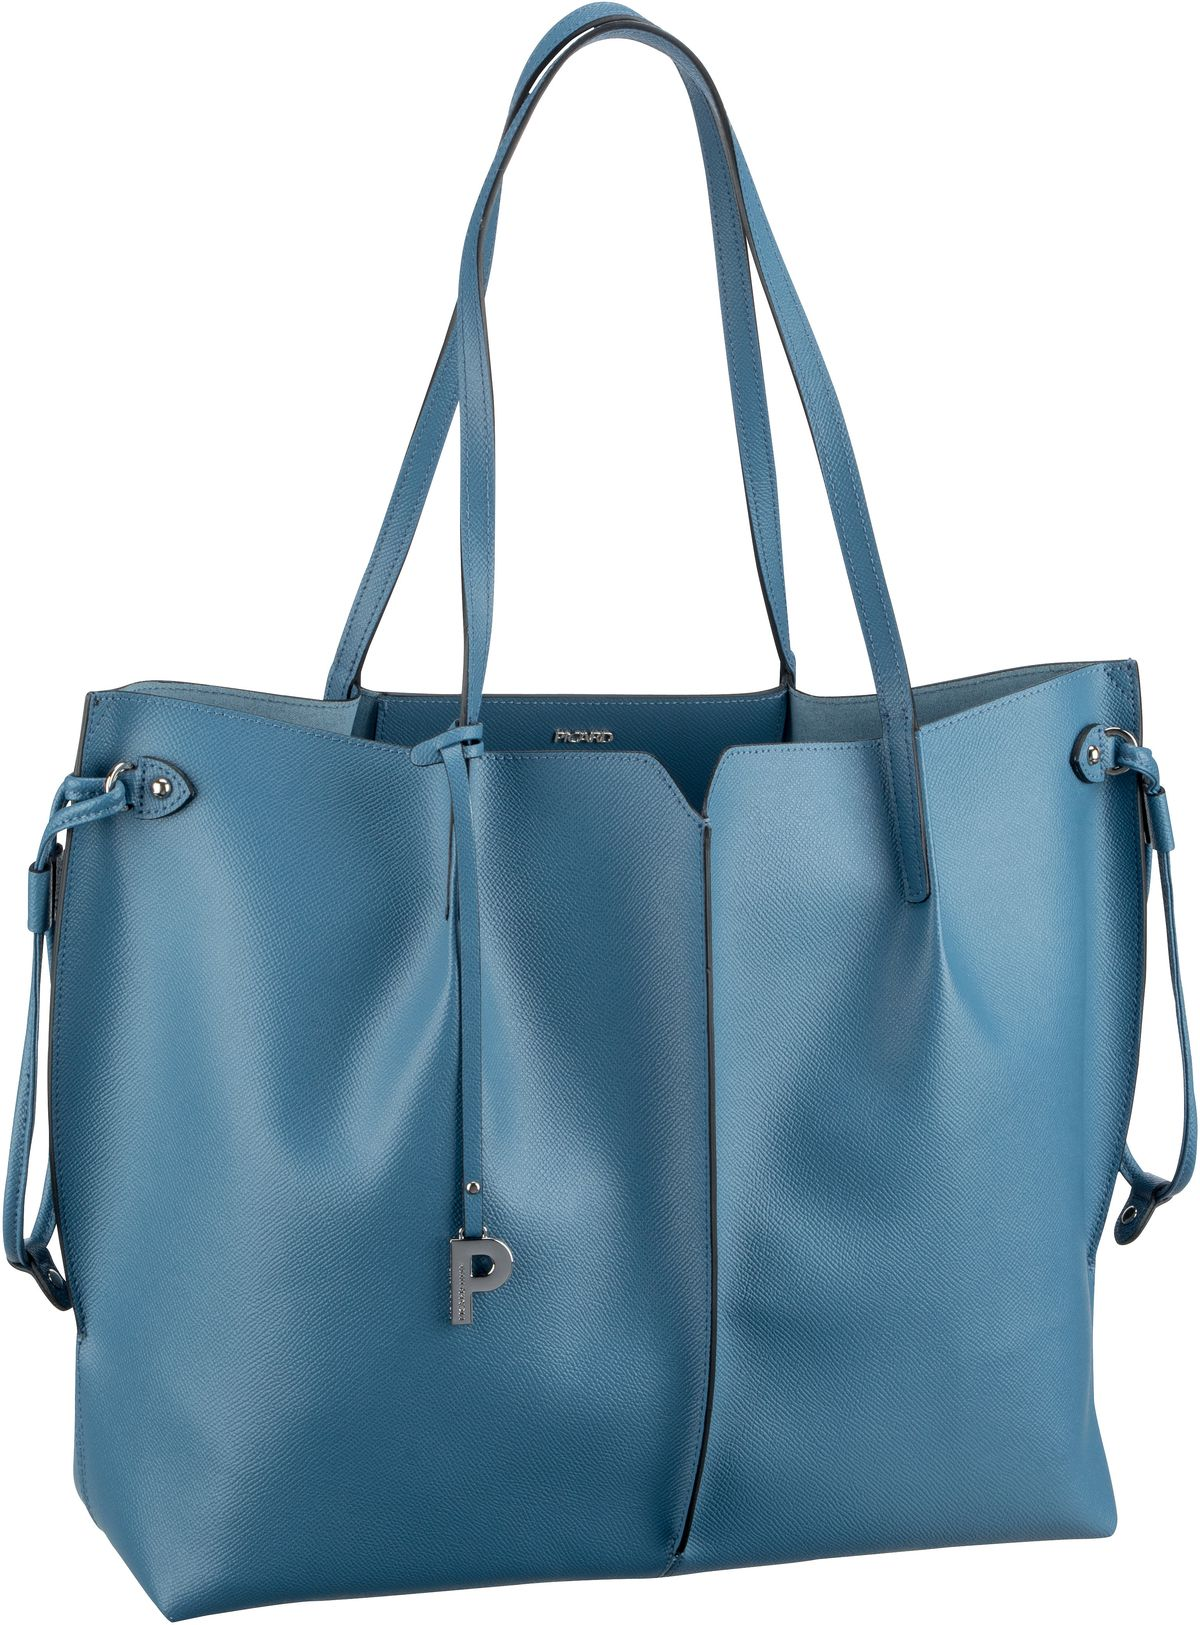 Shopper Twinge 9556 Wintersky